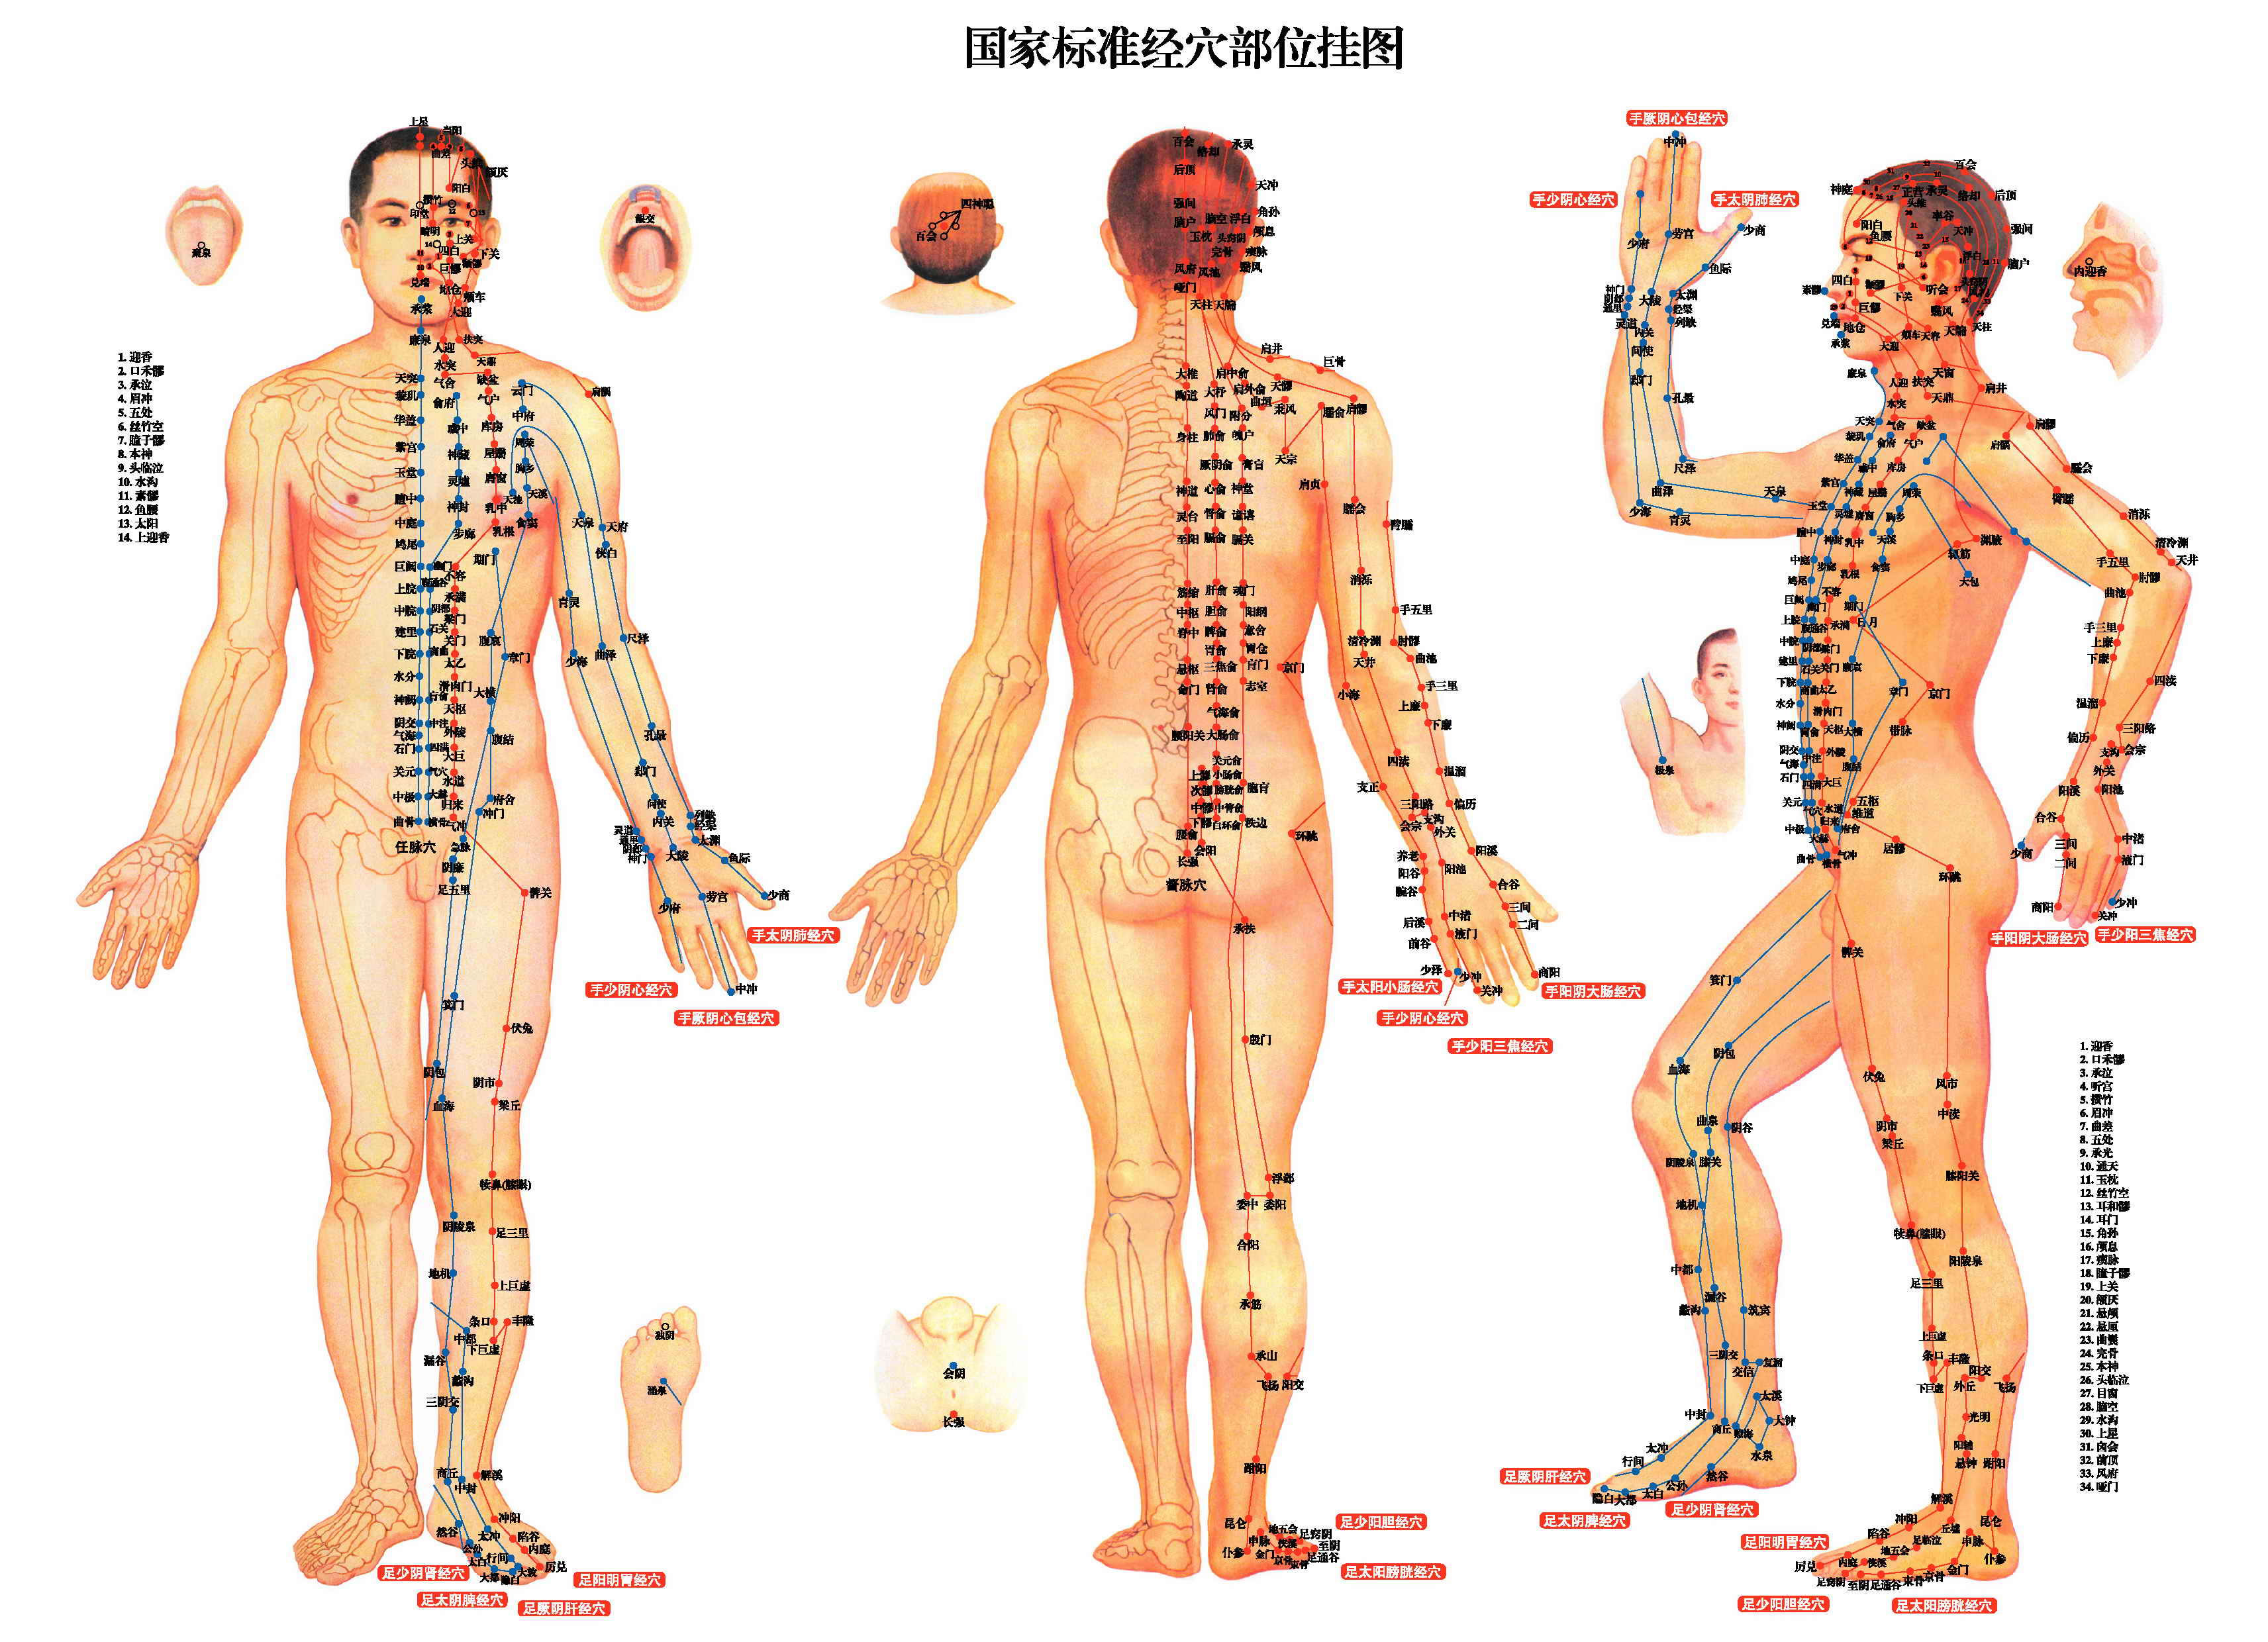 the benefits of acupuncture on the human body The body the bedroom how much do you know about sex, love, and the human body the definition of acupuncture, the benefits of acupuncture and its drawbacks.